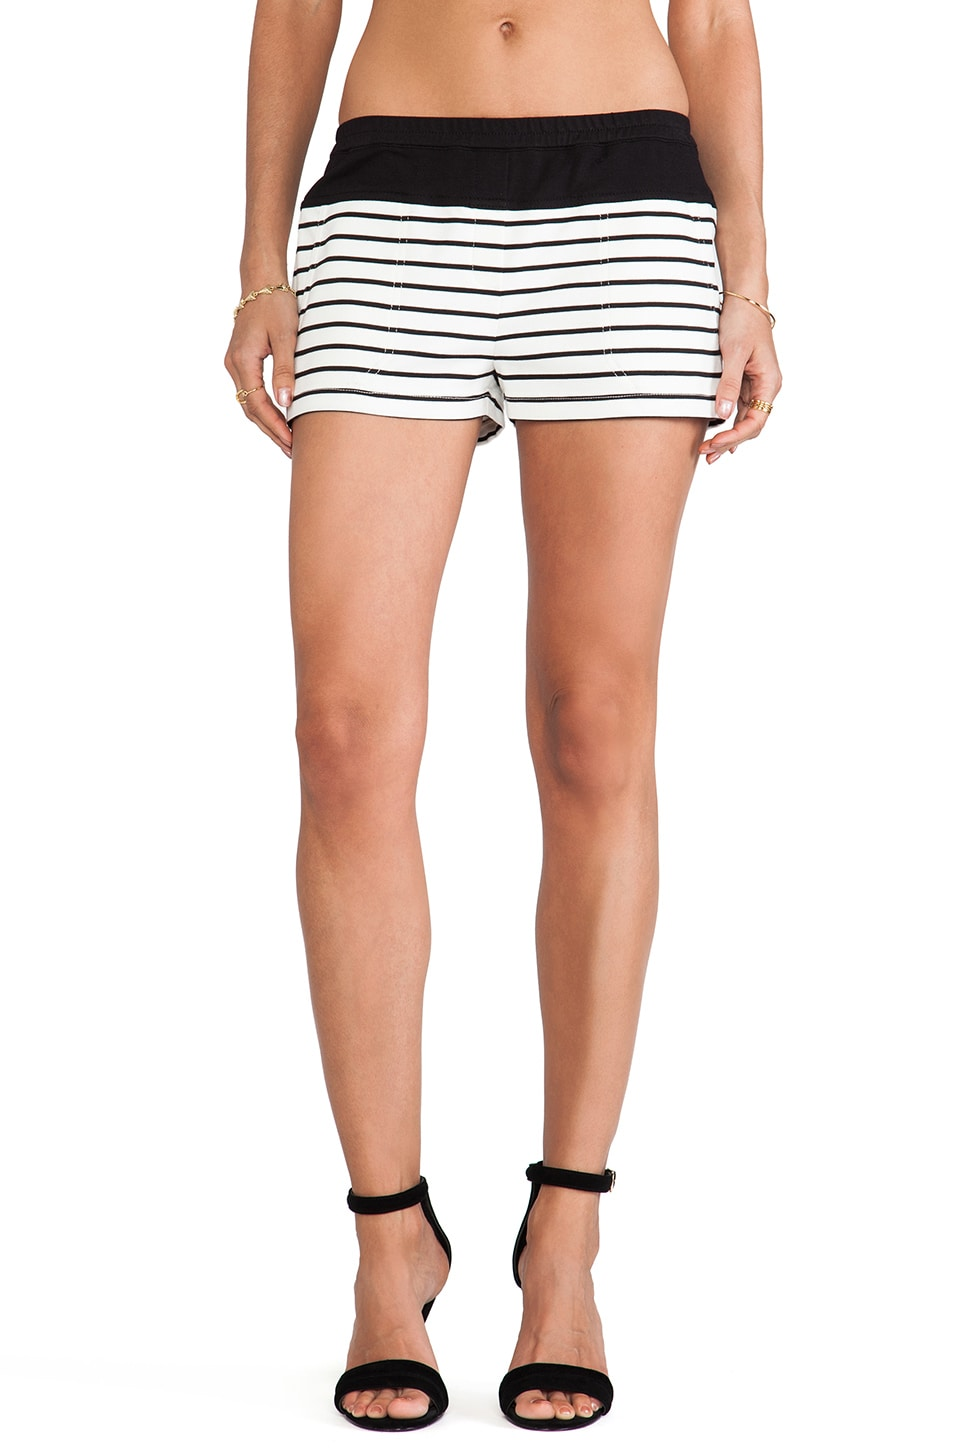 BCBGMAXAZRIA Teagan Striped Shorts in Off White & Black Combo